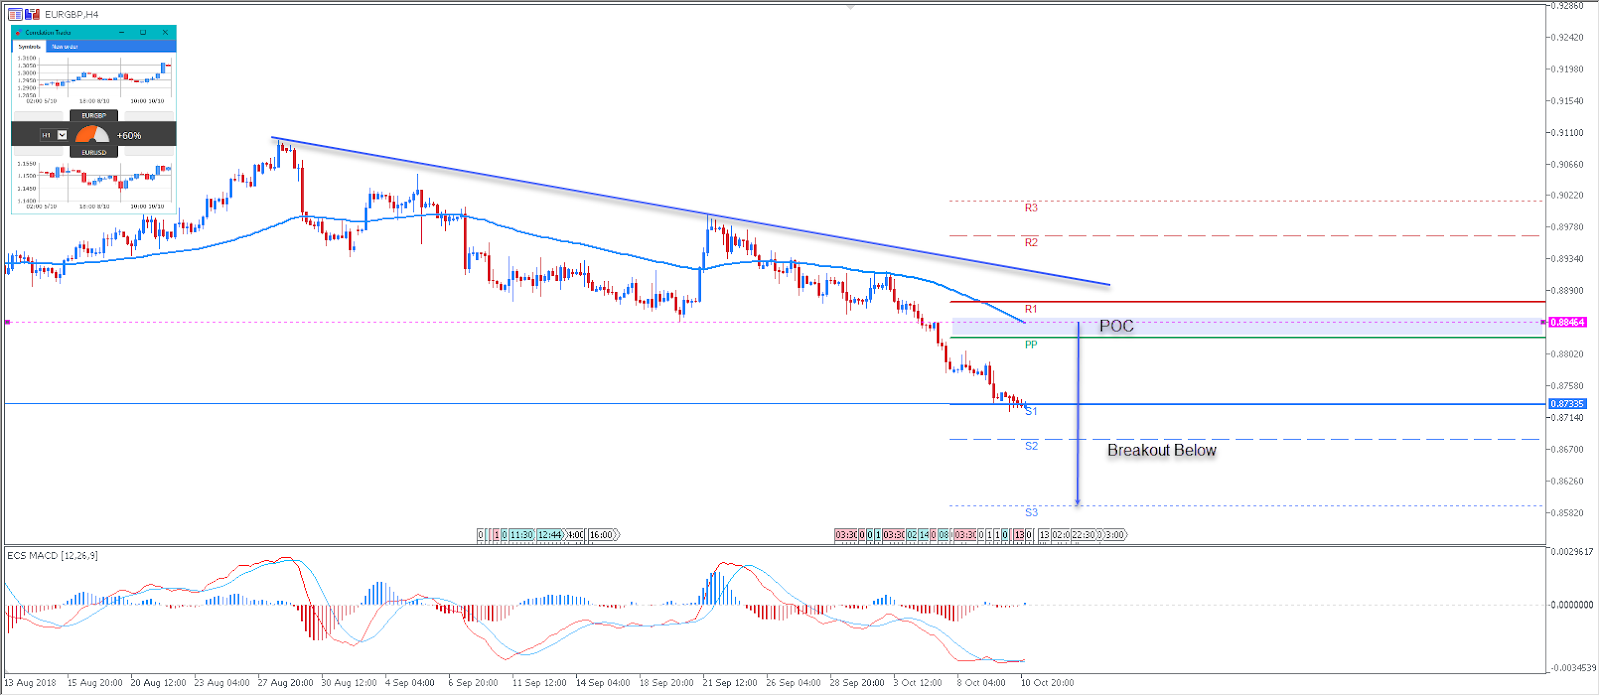 EURGBP Daily Chart - Technical Analysis